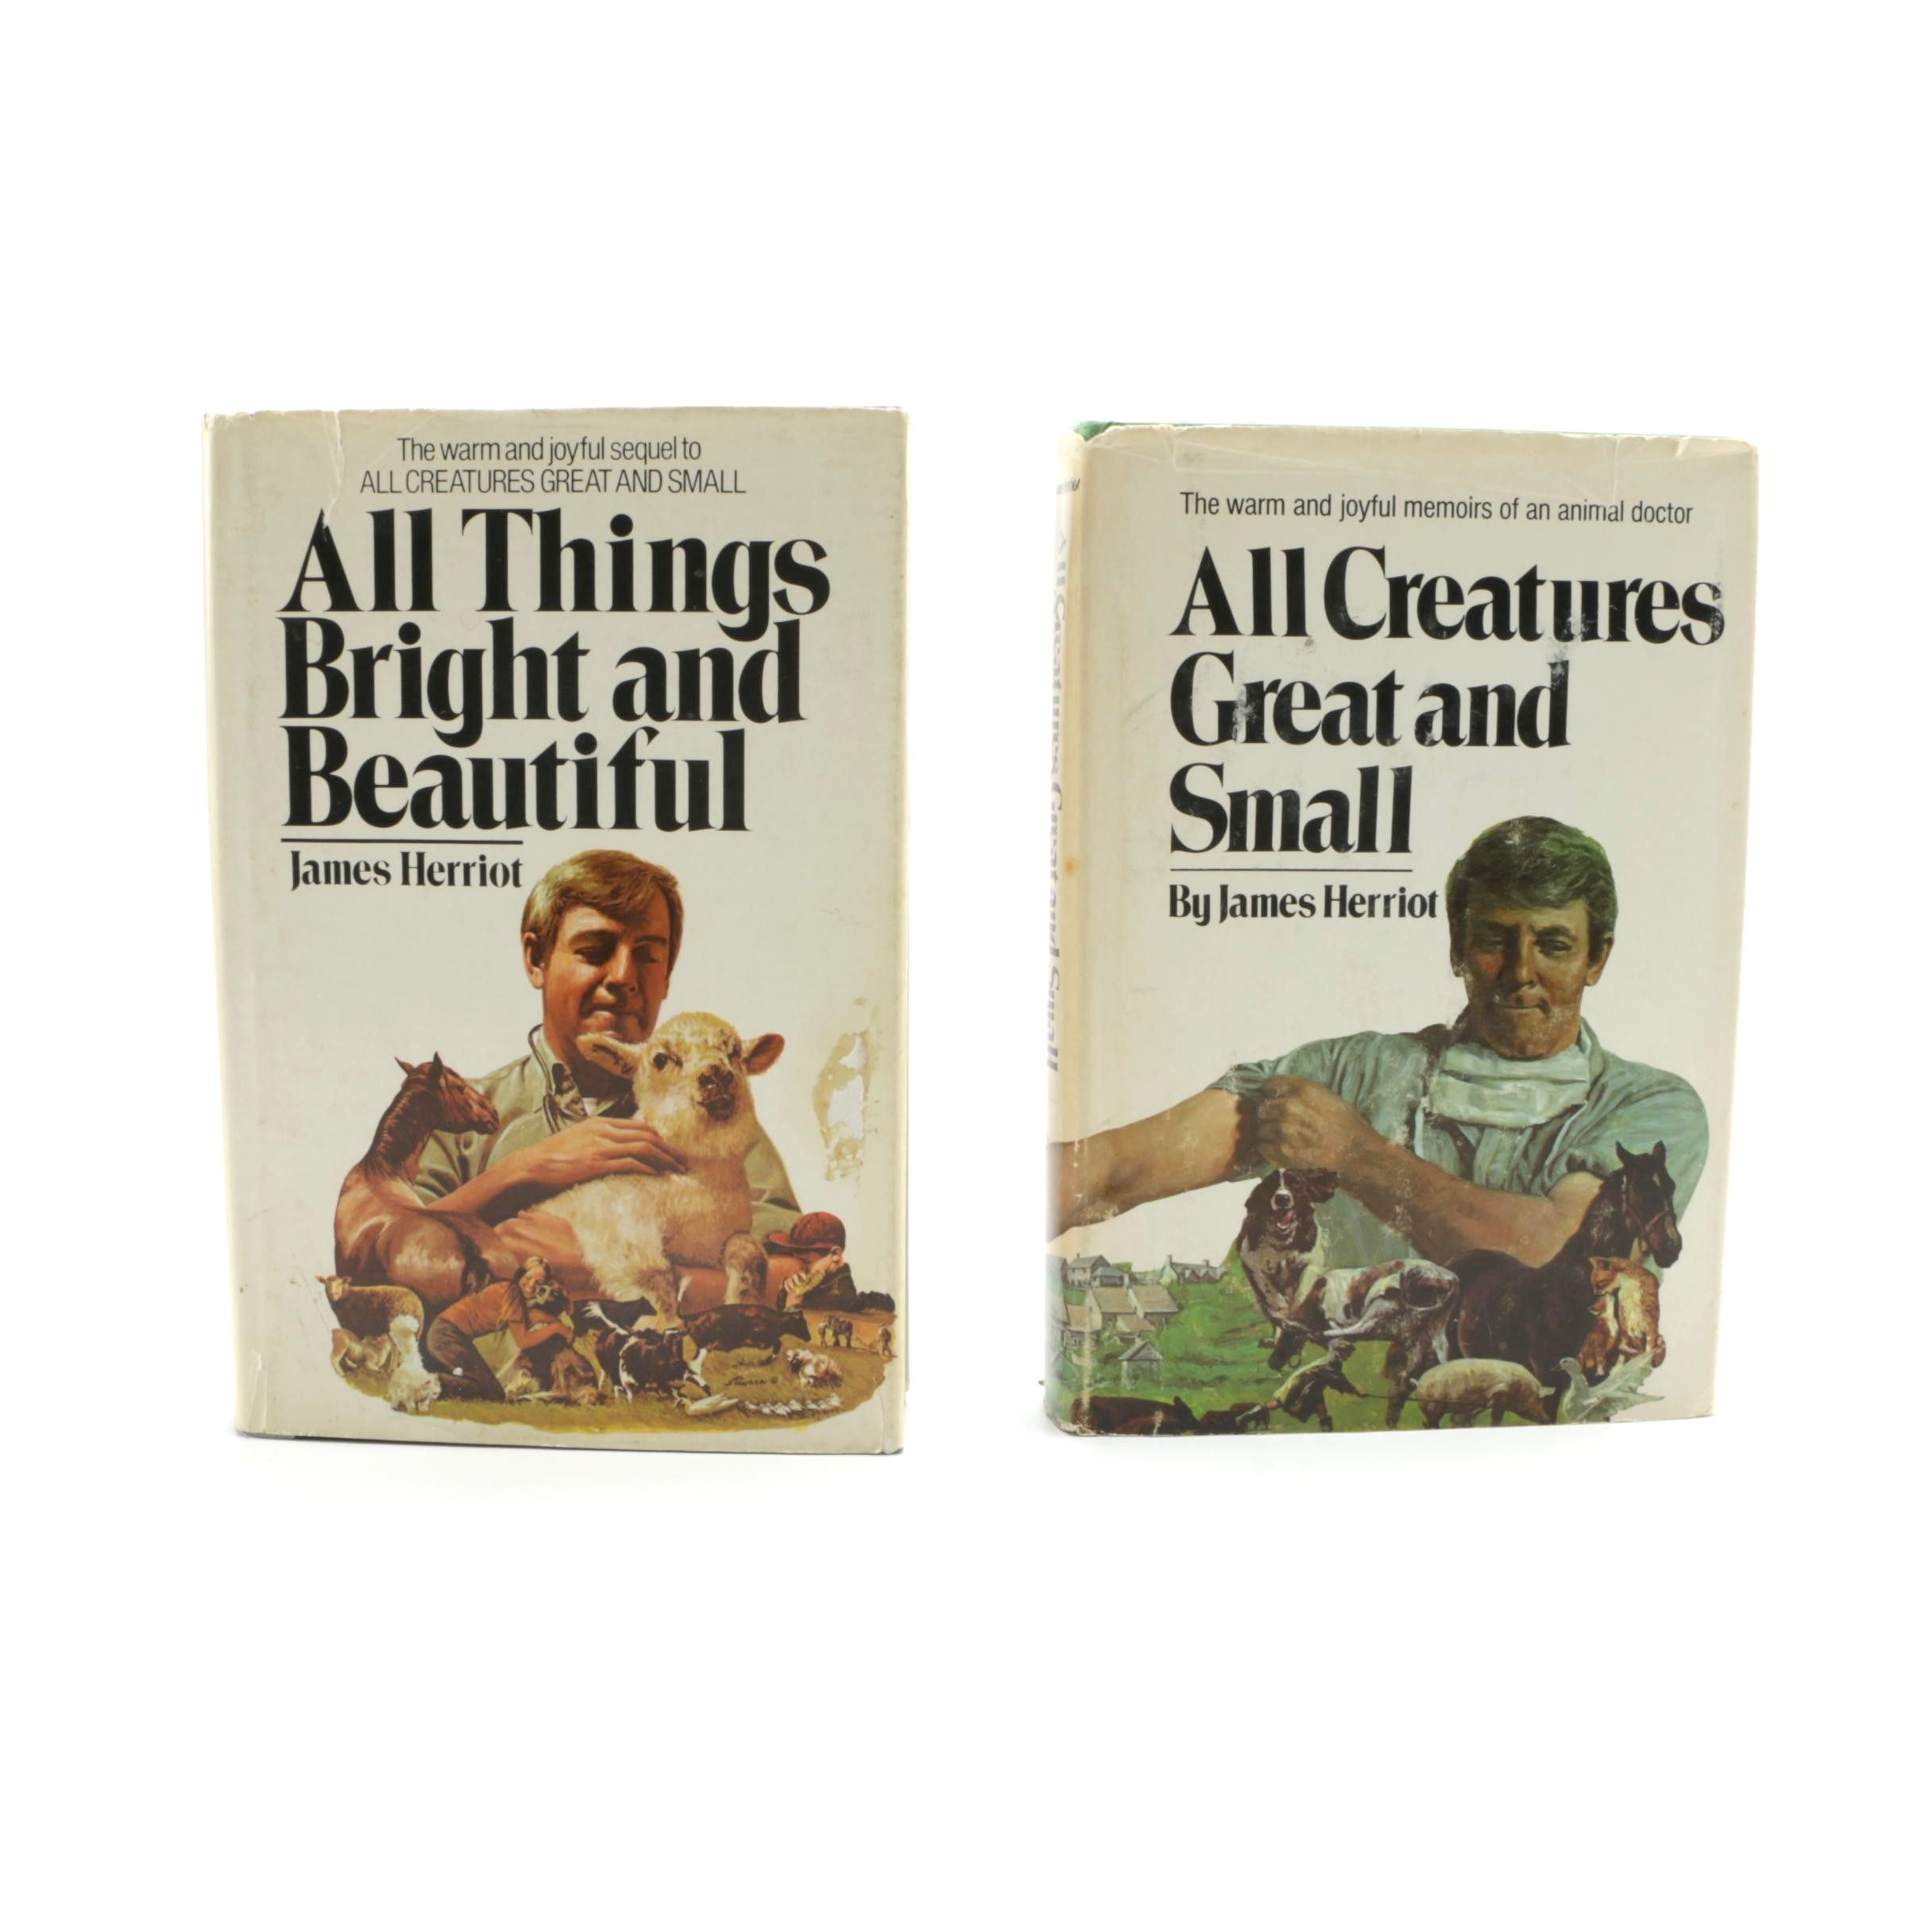 """1970s """"All Things Bright and Beautiful"""" and """"All Creatures Great and Small"""" by James Herriot"""